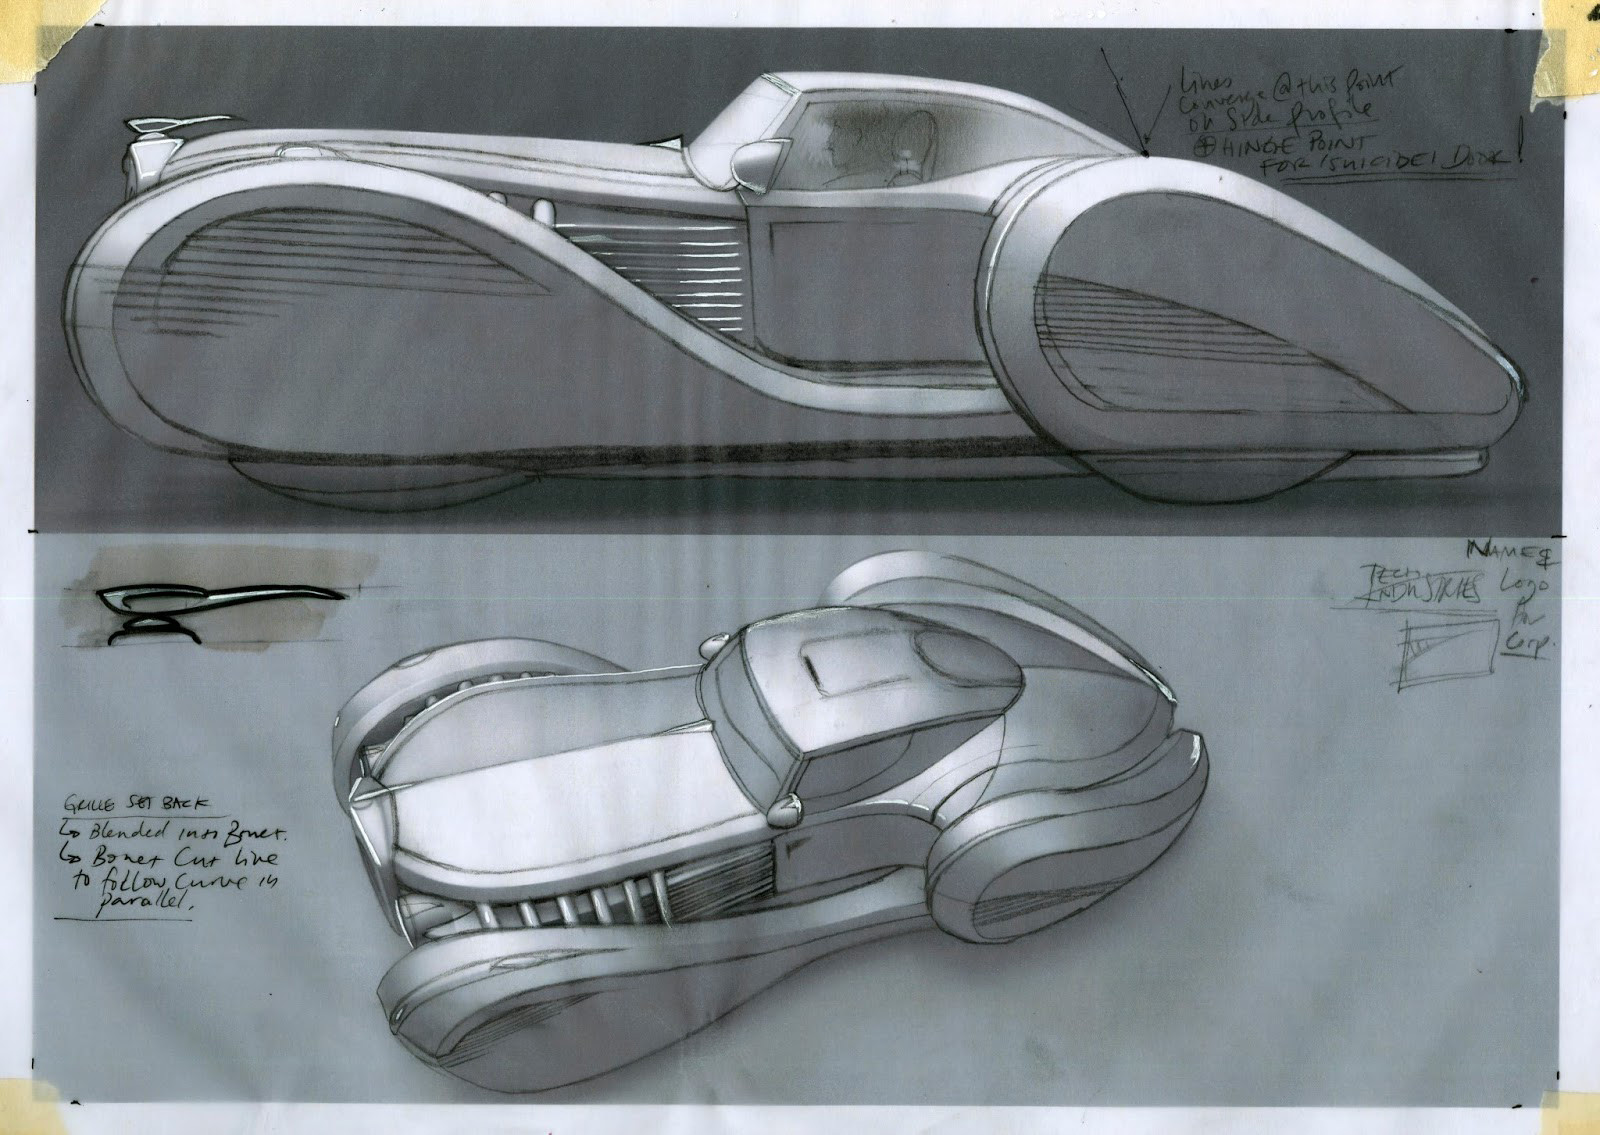 Bradley morgan johnson car sketch over levels adjust